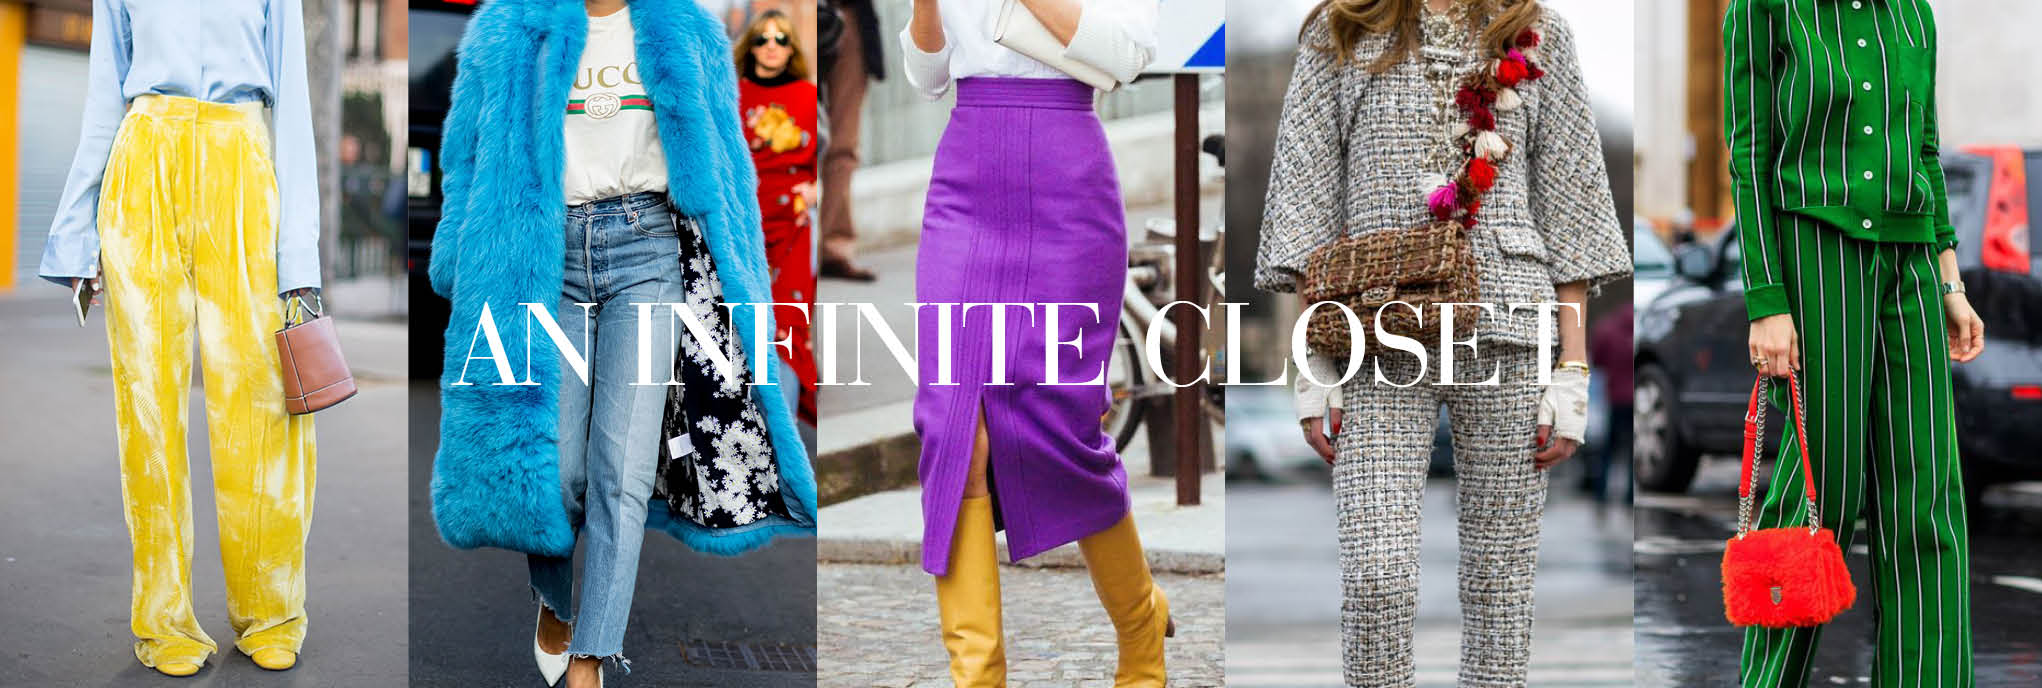 Visit an infinite closet on The Chic Selection